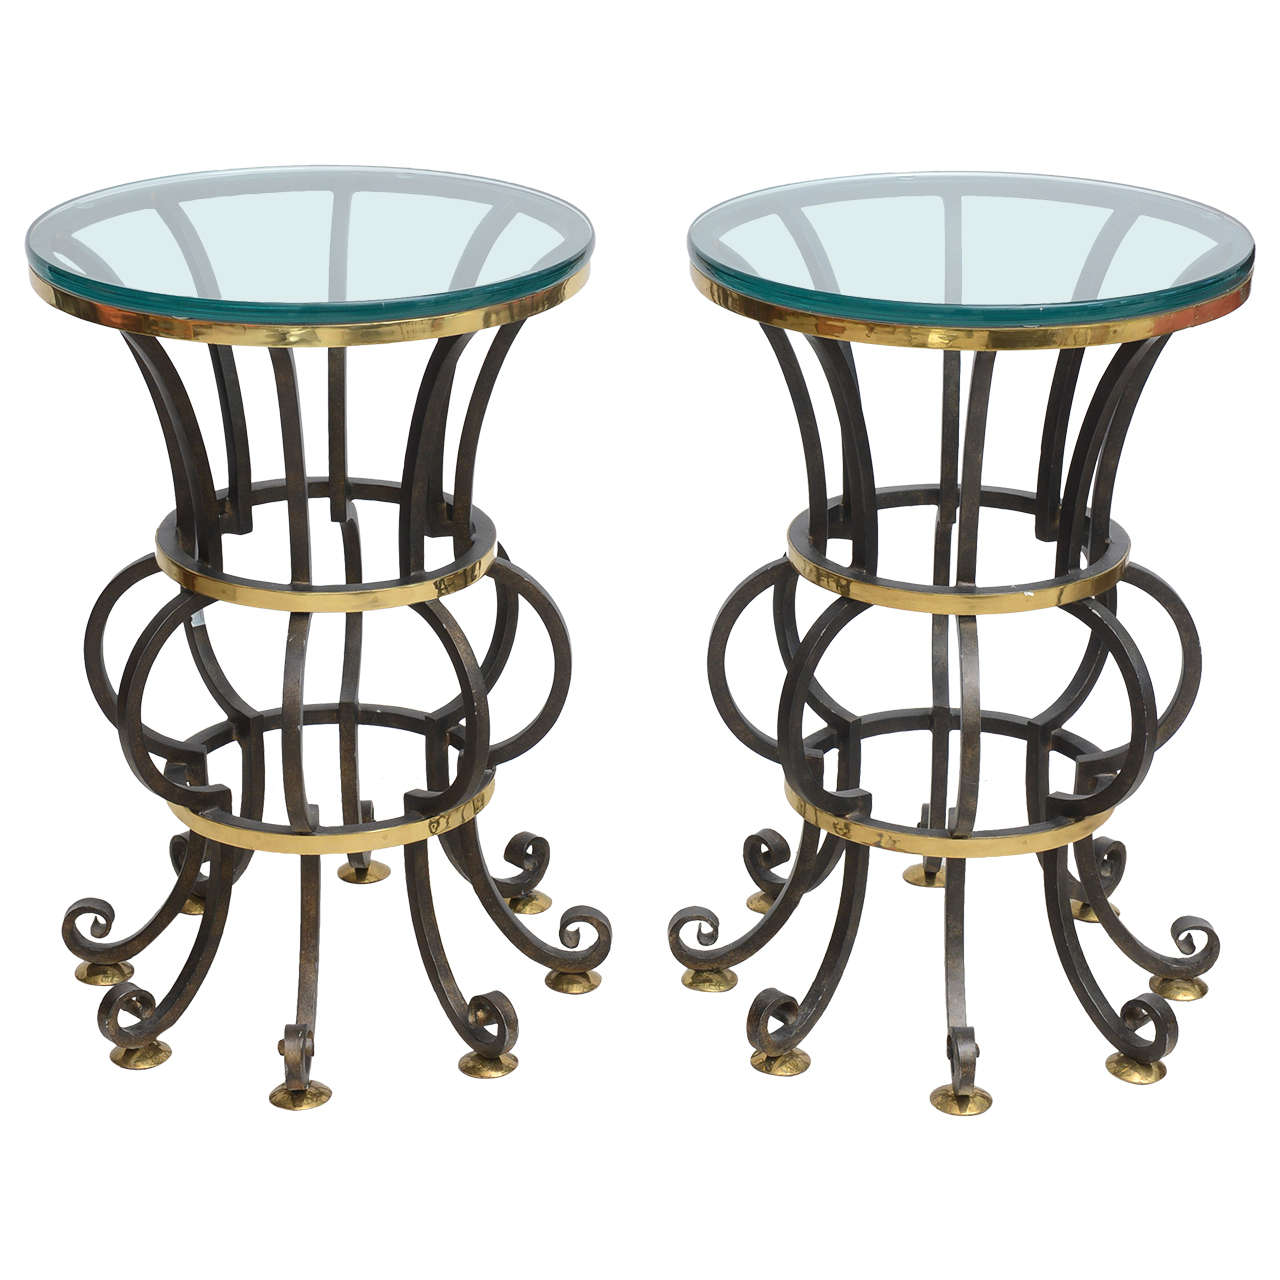 Pair of Iron and Brass with Glass Top Tables by Arturo Pani